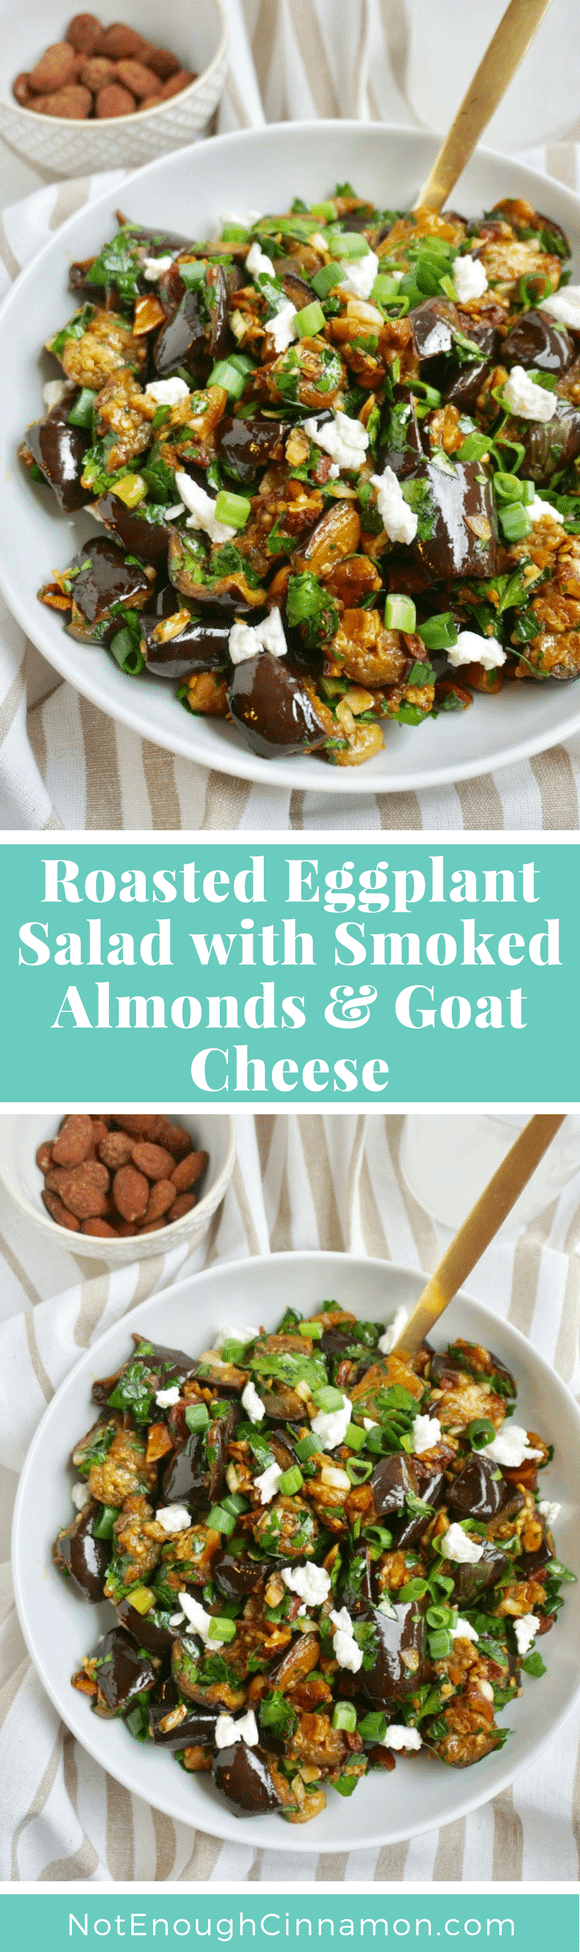 Roasted Eggplant Salad with Smoked Almonds and Goat Cheese | A delicious vegetarian salad that can be served warm and cold! Smoked Almonds and creamy, tangy goat cheese add texture and flavor to this delicious clean eating salad! For a vegan version, skip the cheese #saladrecipes, #cleaneatingrecipes, #veganrecipes, #healthyrecipes